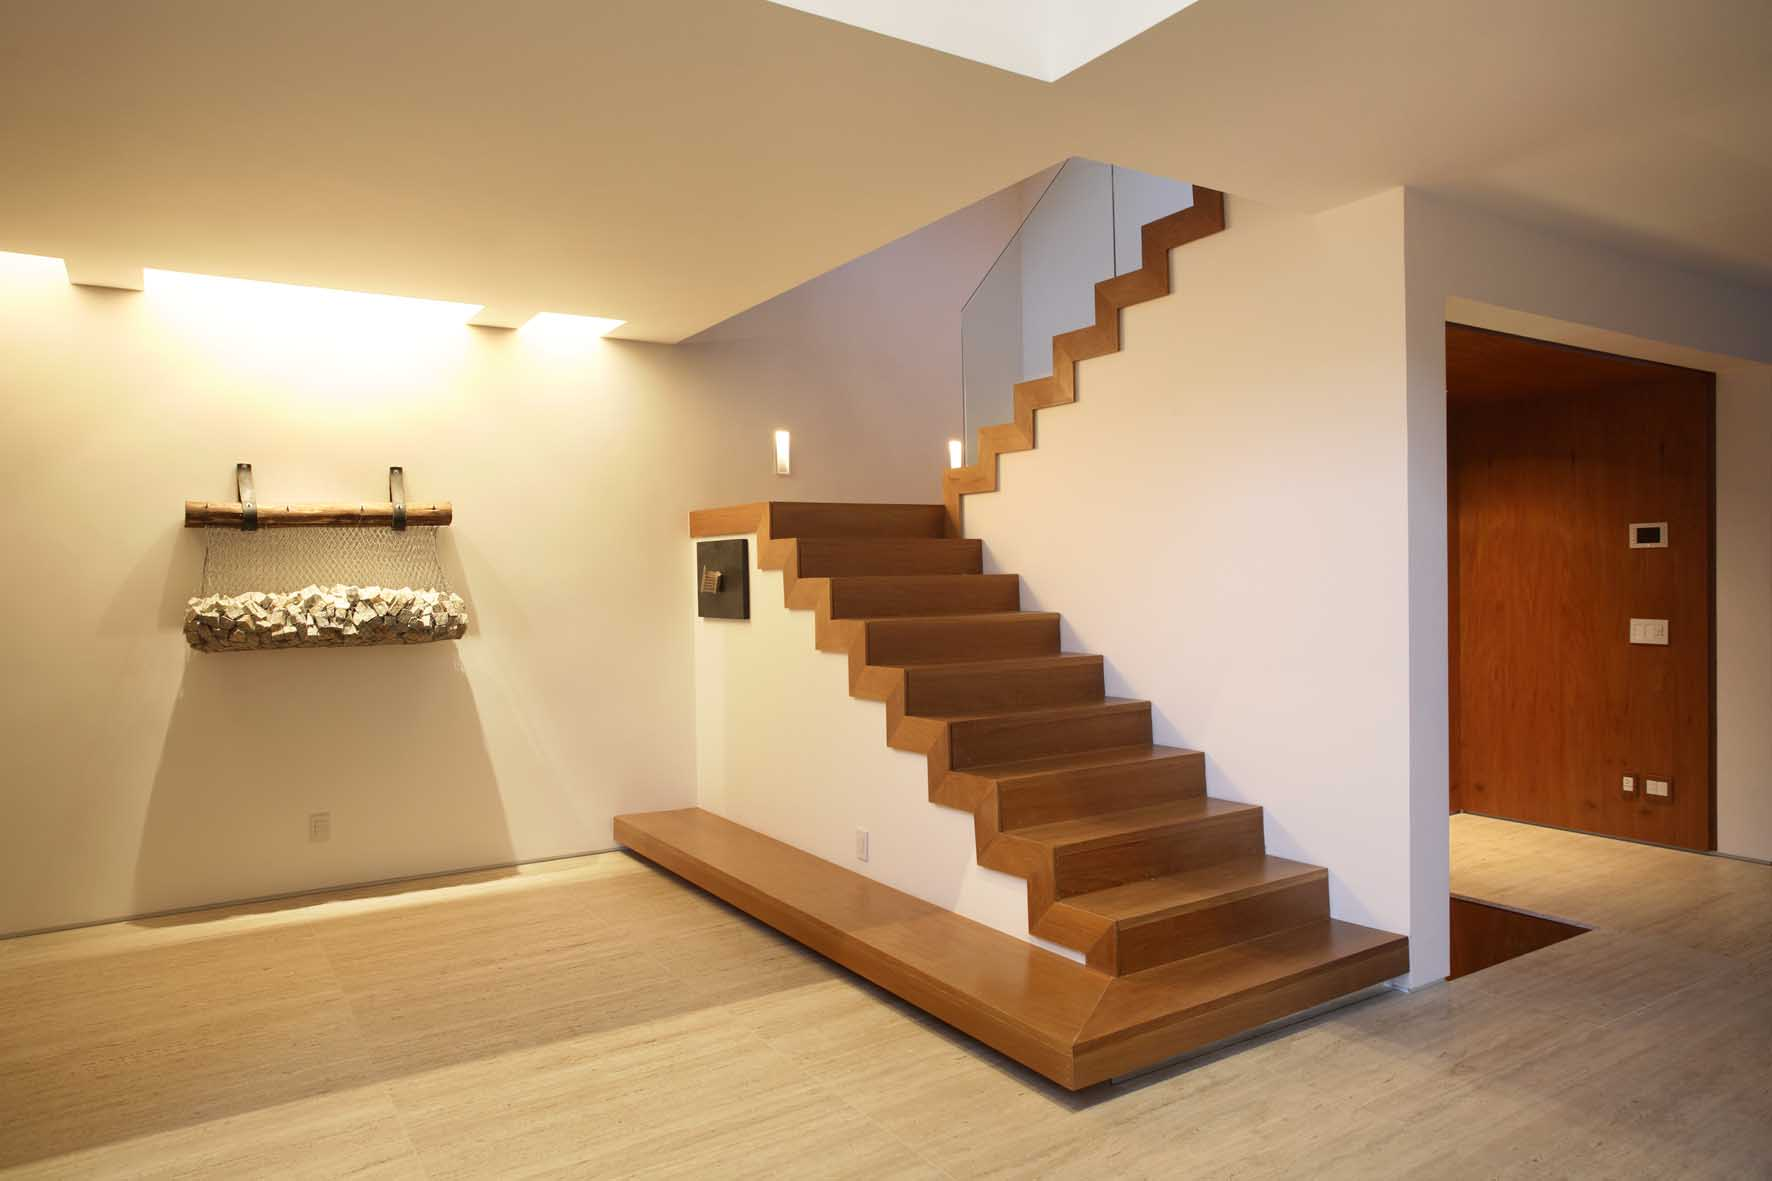 Wooden Staircase With Plaster Walls